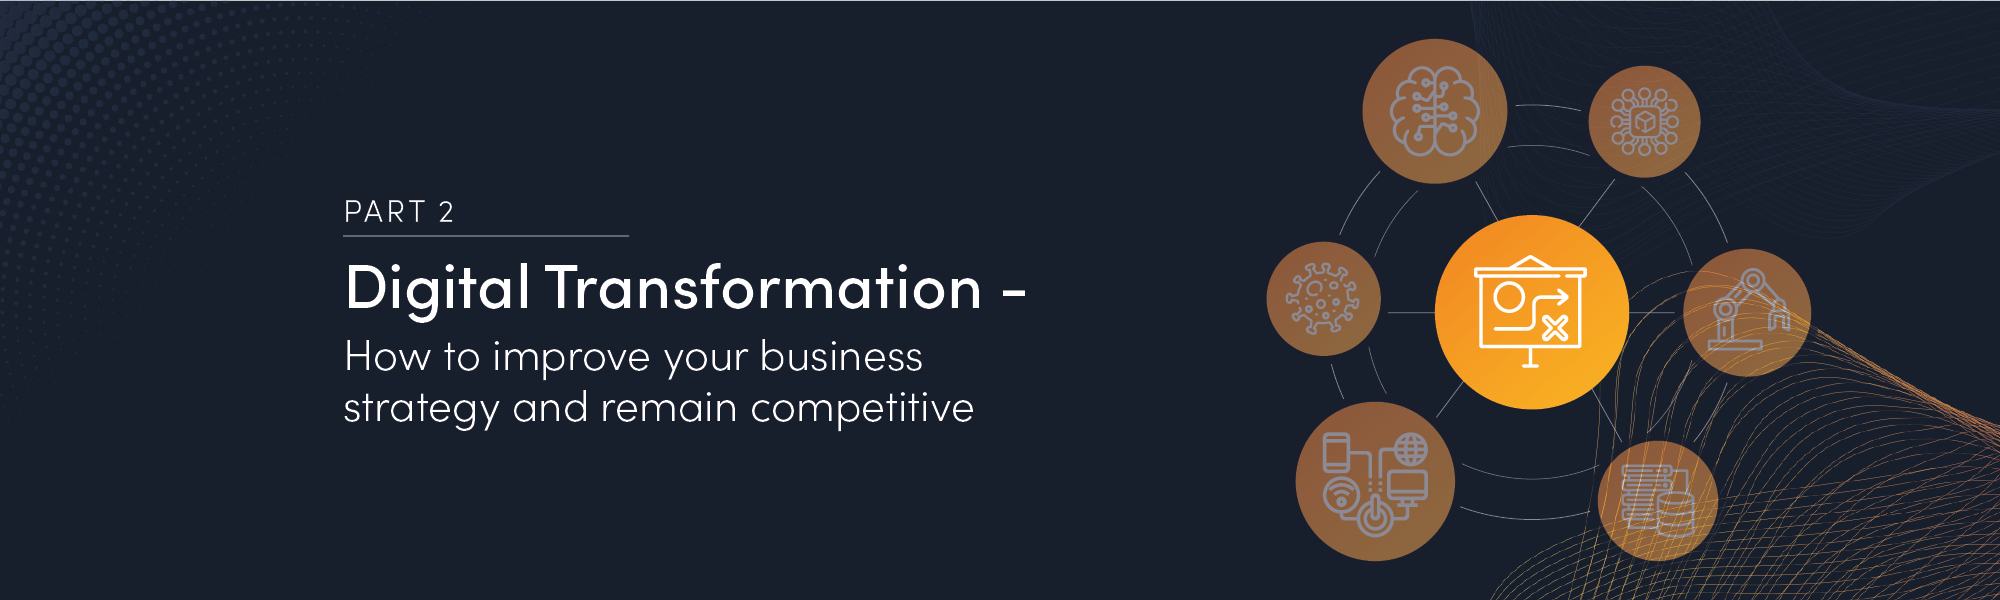 Digital_Transformation_To_Increase_Competitiveness